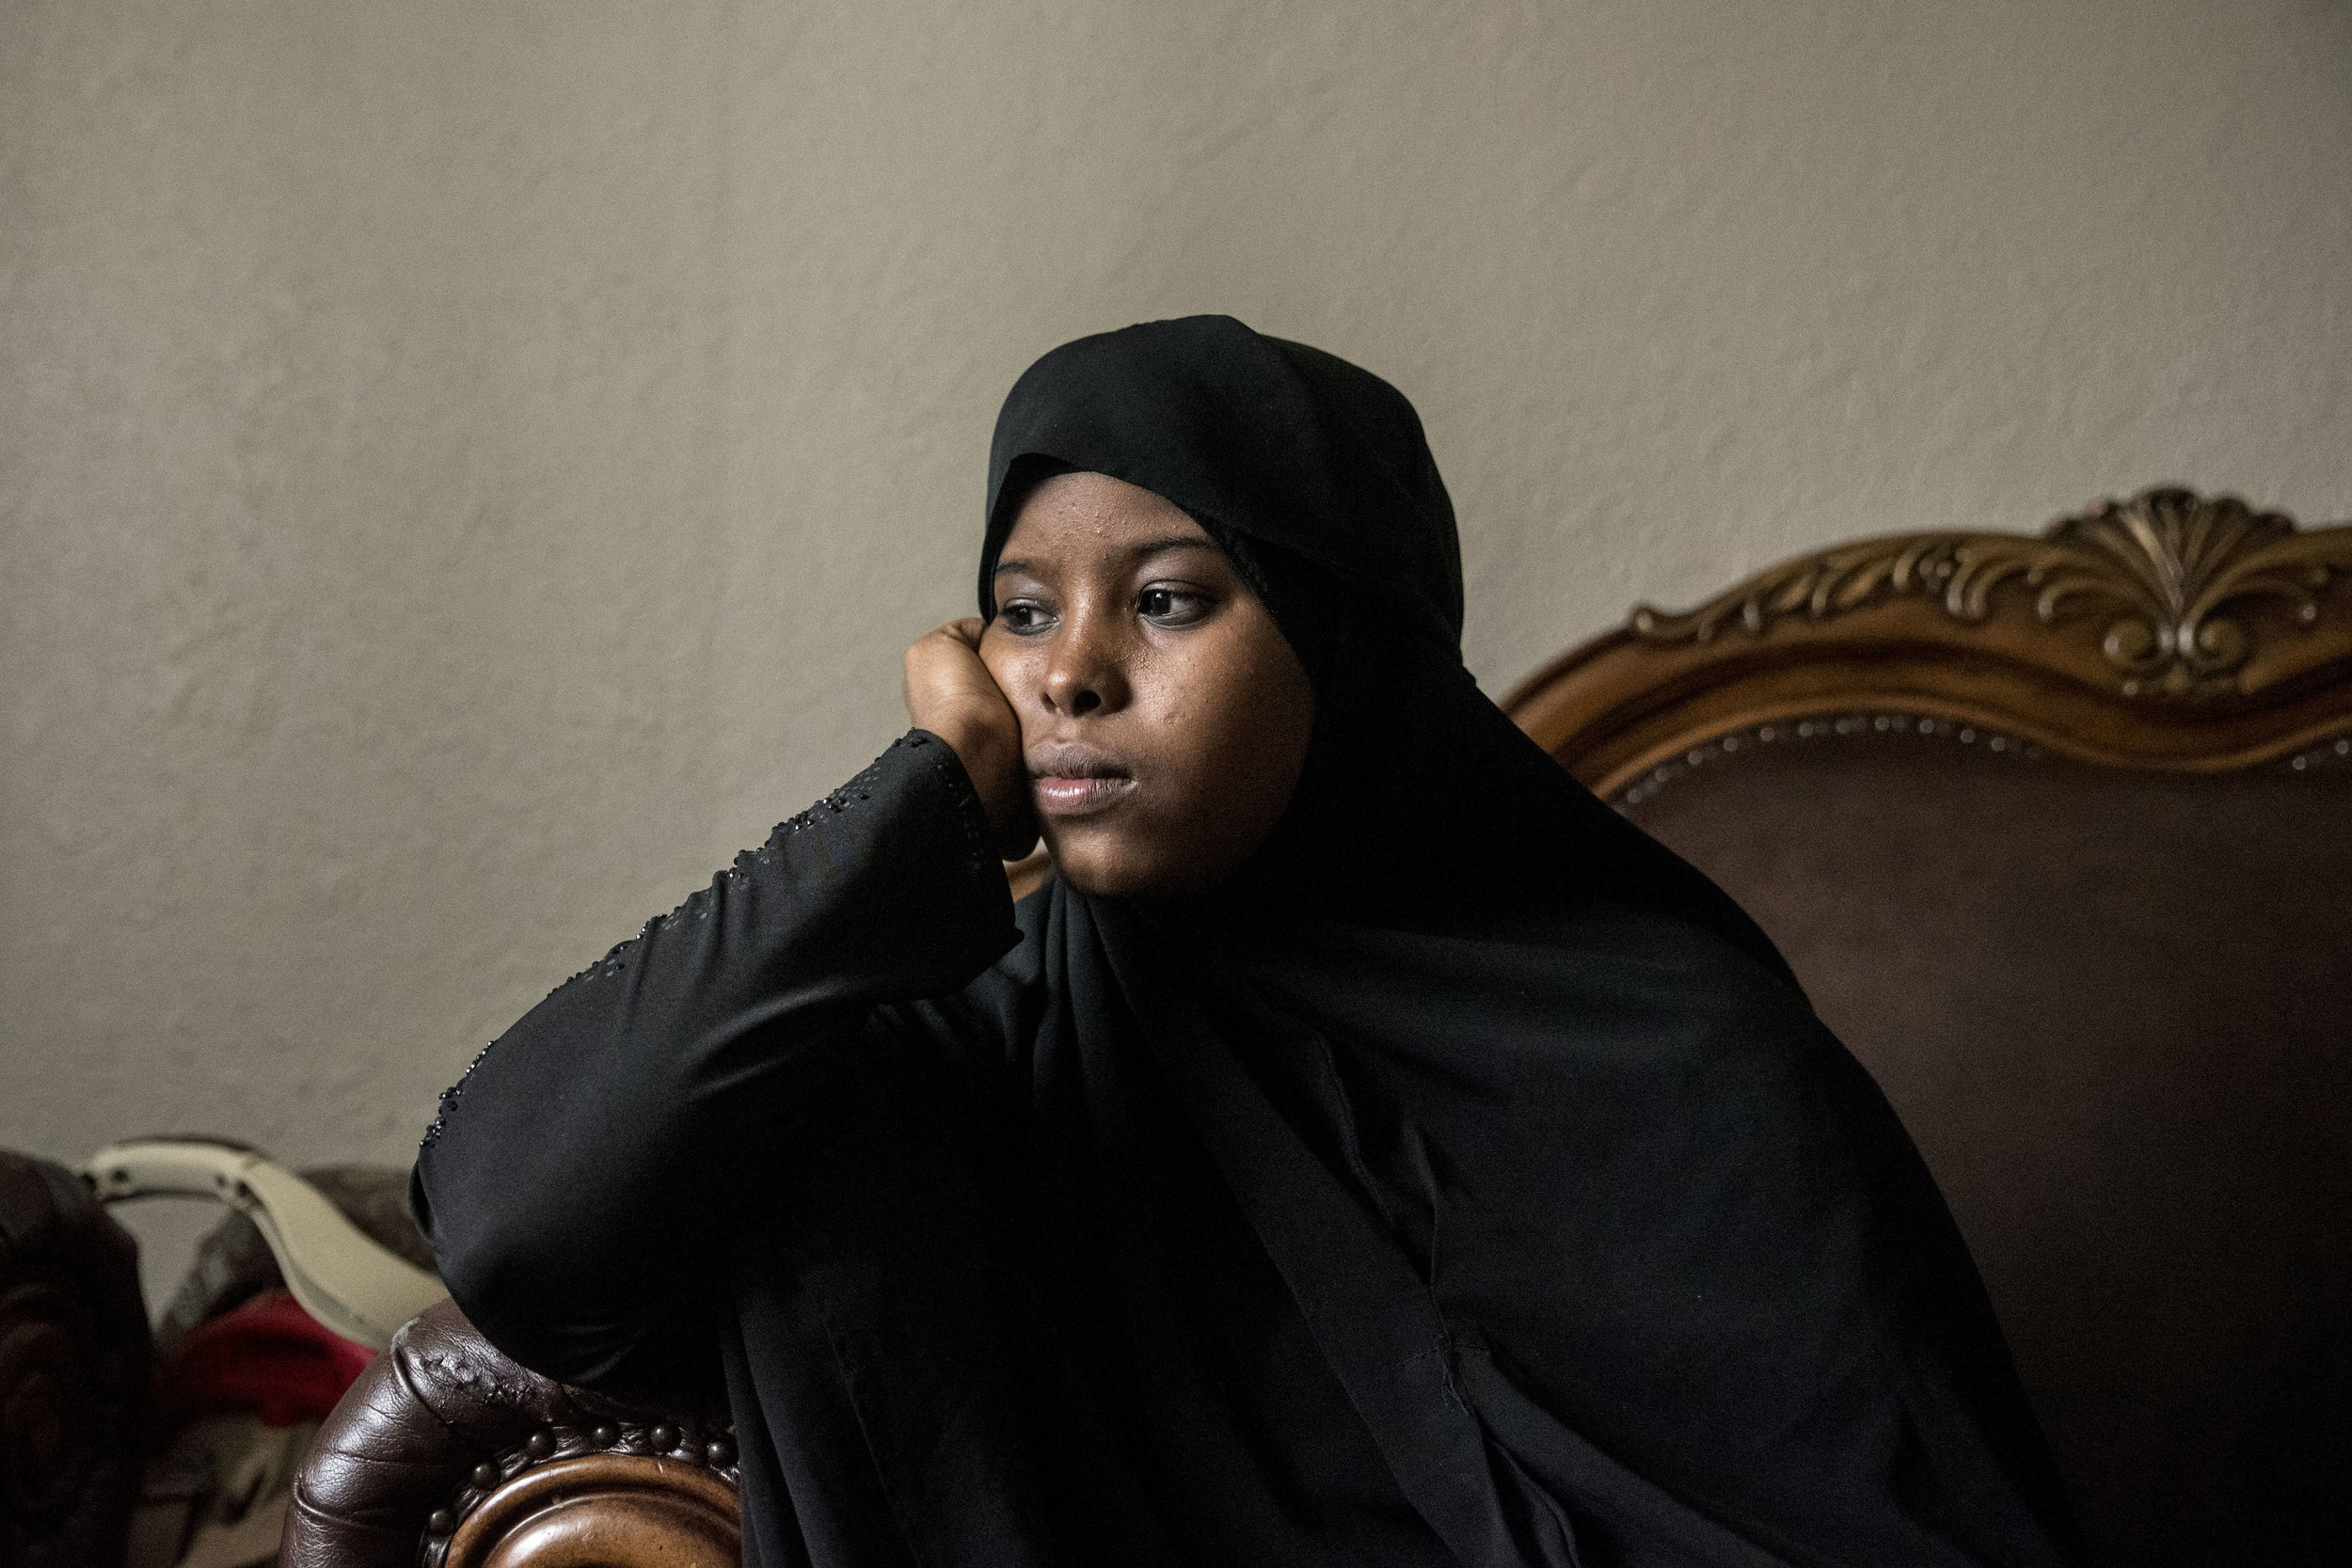 """Hamdi Kosar rests in her apartment Mar. 30. Kosar does not have much free time because of her many obligations. Despite having been in the United States for only several years, she said she feels as if she has found her place in the community most of which has been through her activism. """"Life will push you to the edge until you say, 'I'm ready to get up,'"""" Kosar said. """"When you believe that God is with you throughout the entire way, when you have that trust, you are no longer fearful. That's why I a do what I do and try and give back to the community."""""""